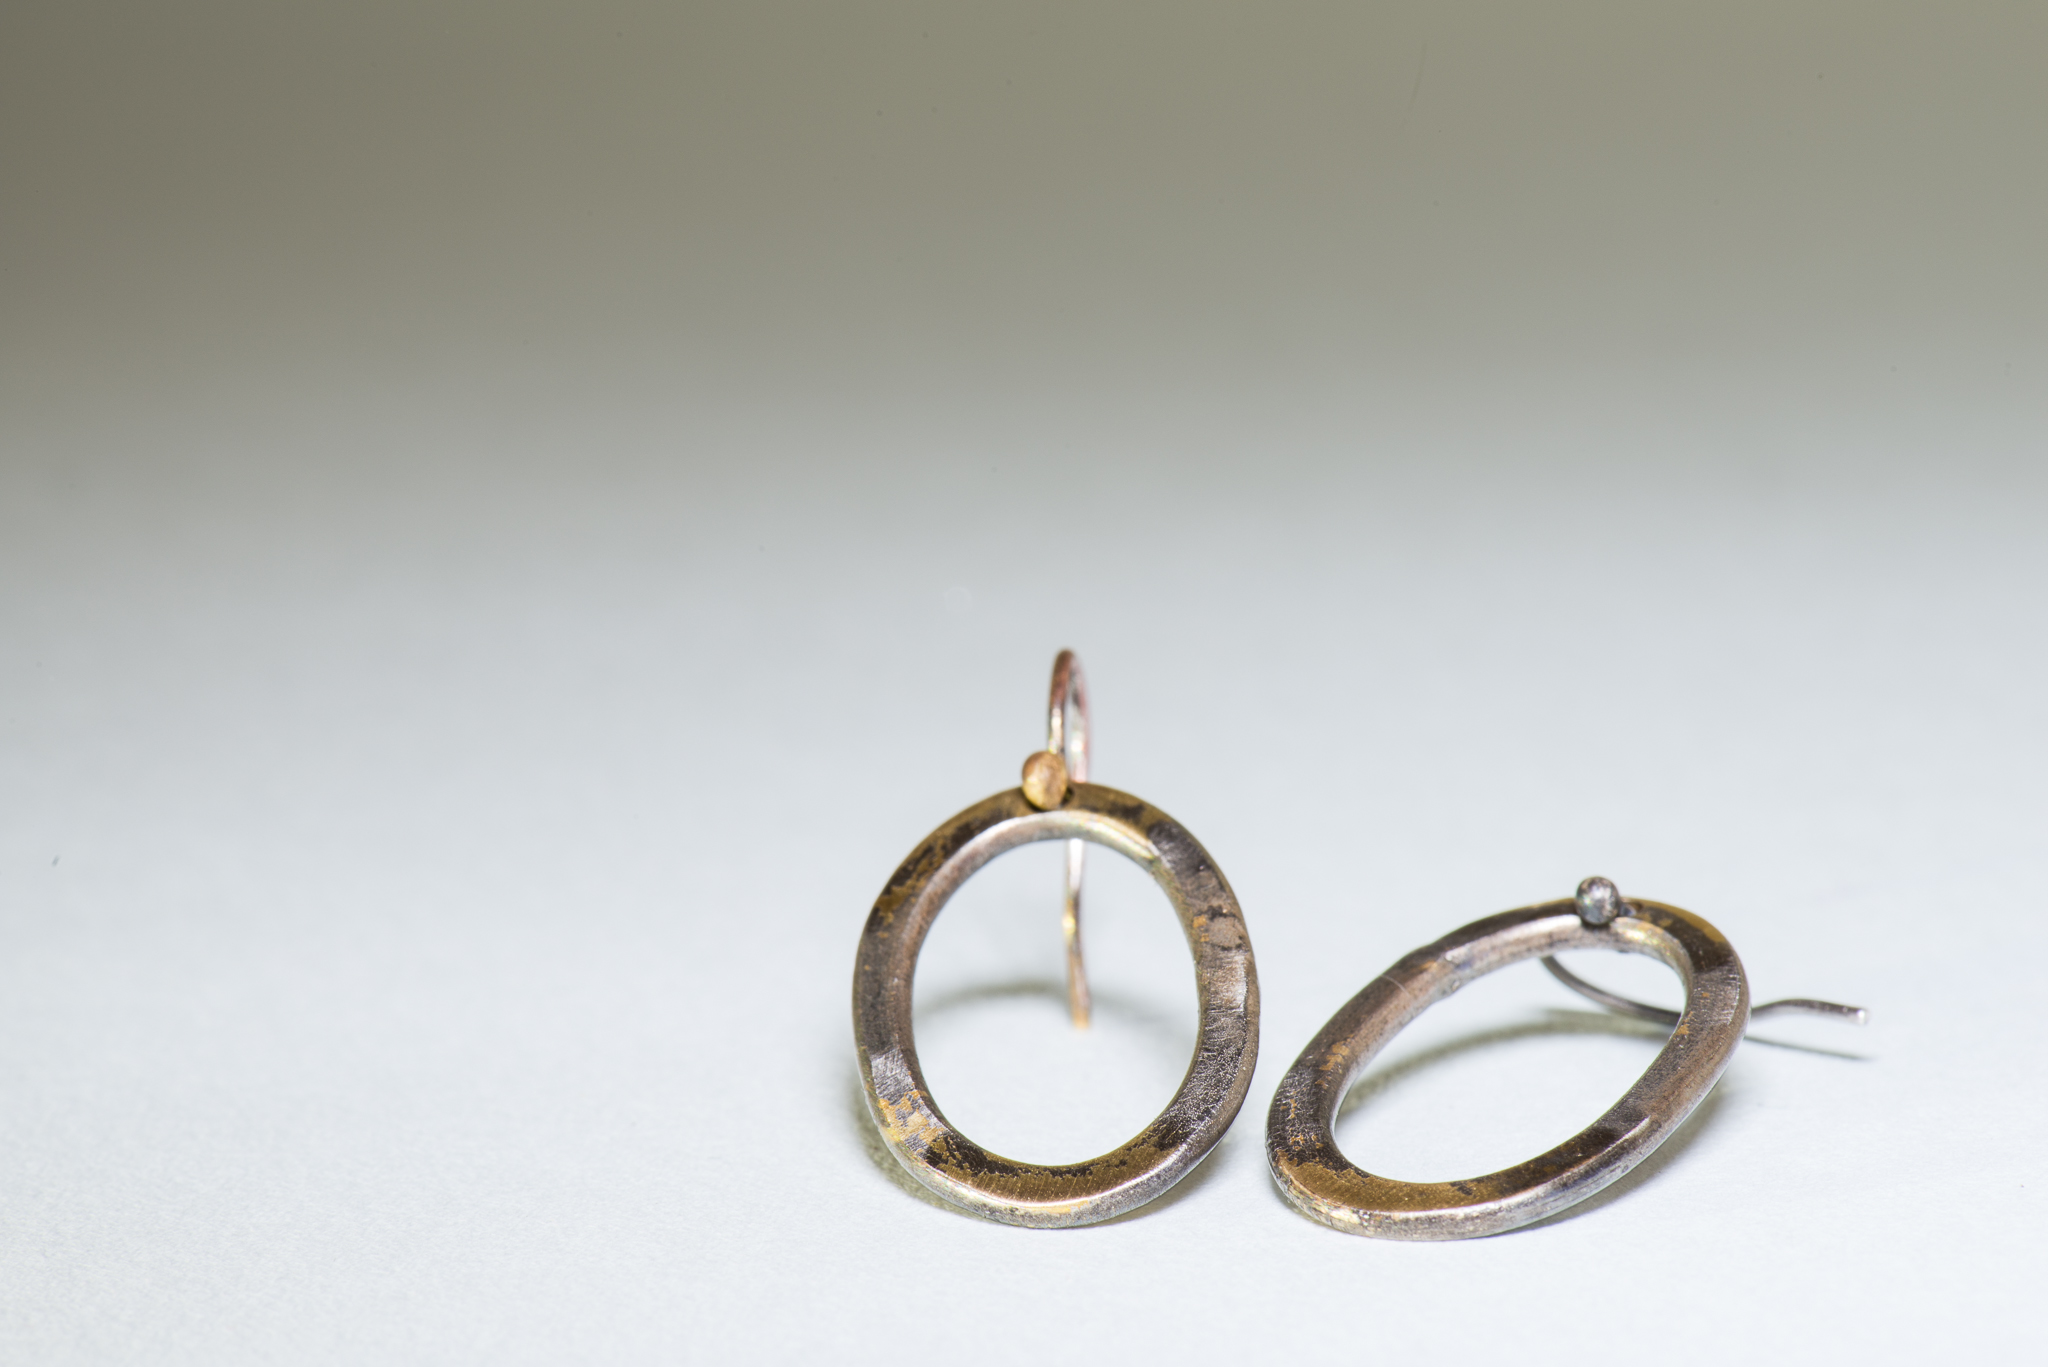 6-Annika Rundberg-Jump Ring Earrings.jpg